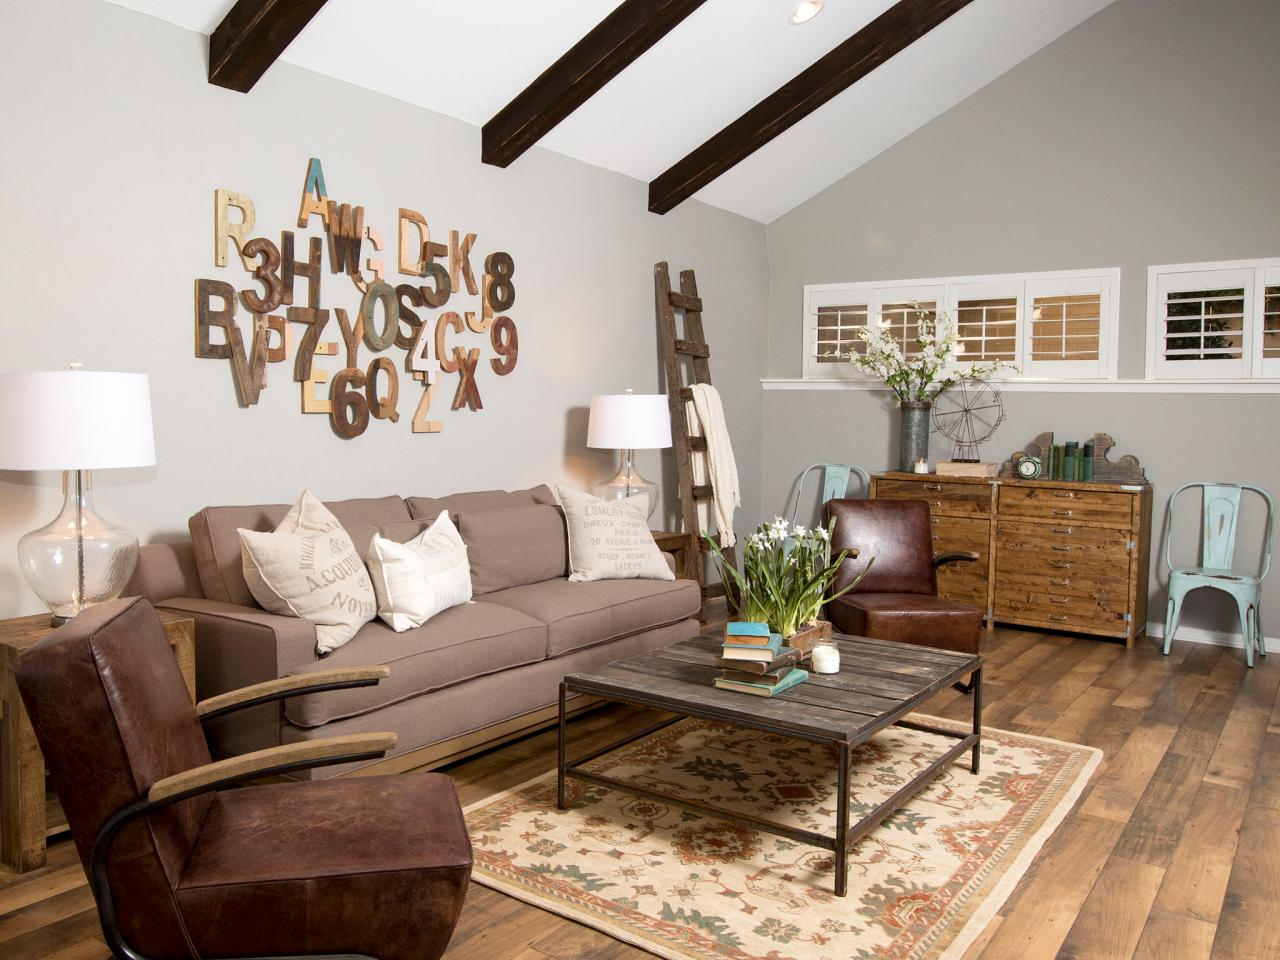 Wood Walls Living Room Design Fill Your Walls With Fixer Upper Inspired Artwork 11 Easy To